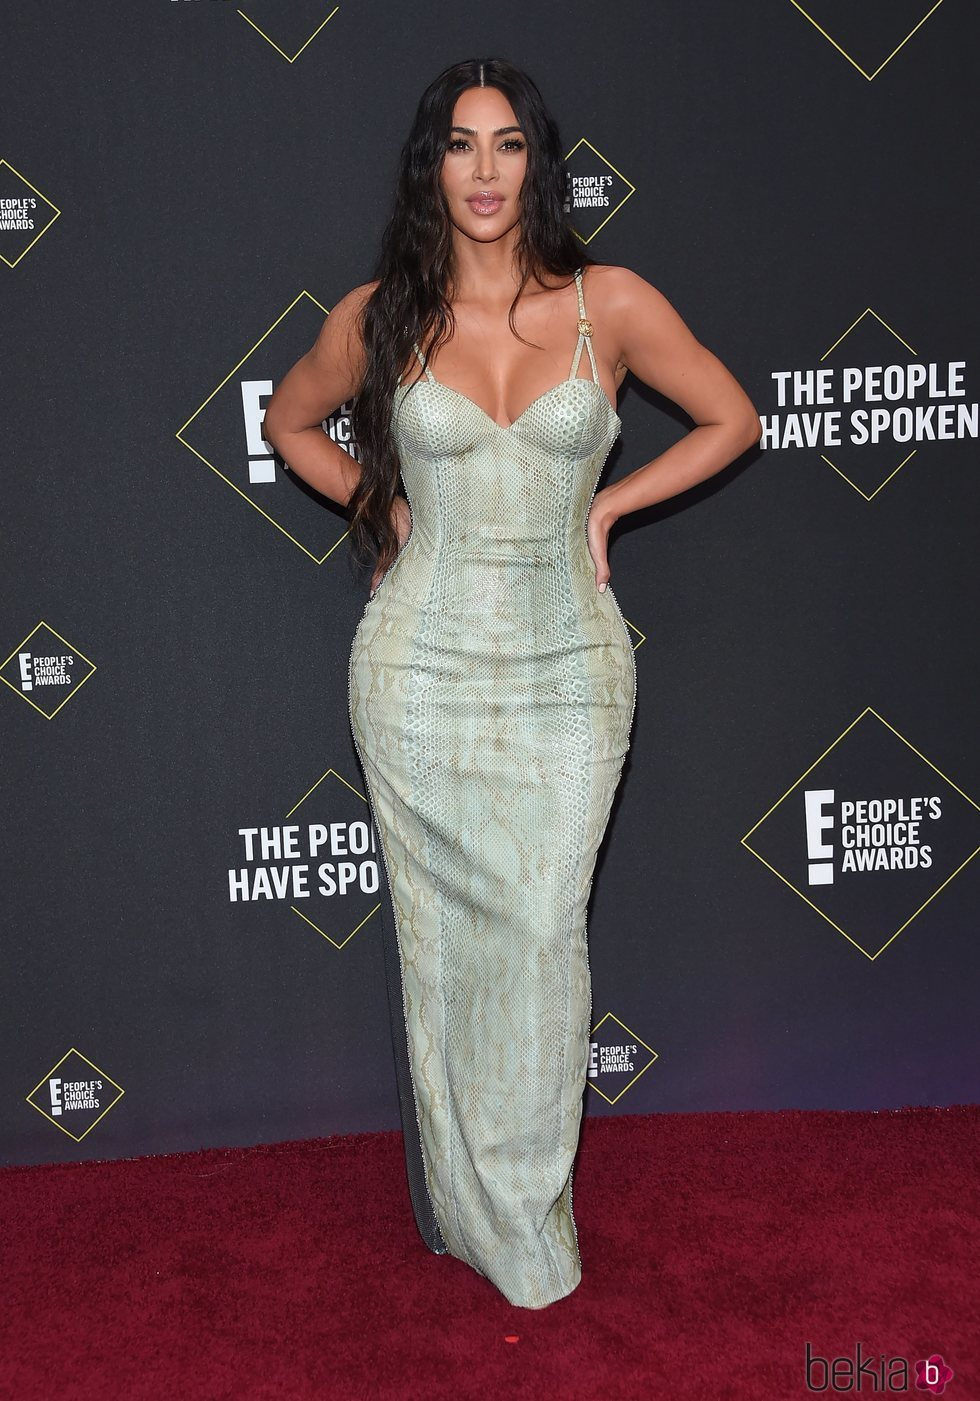 Kim Kardashian en la alfombra roja de los People's Choice Awards 2019